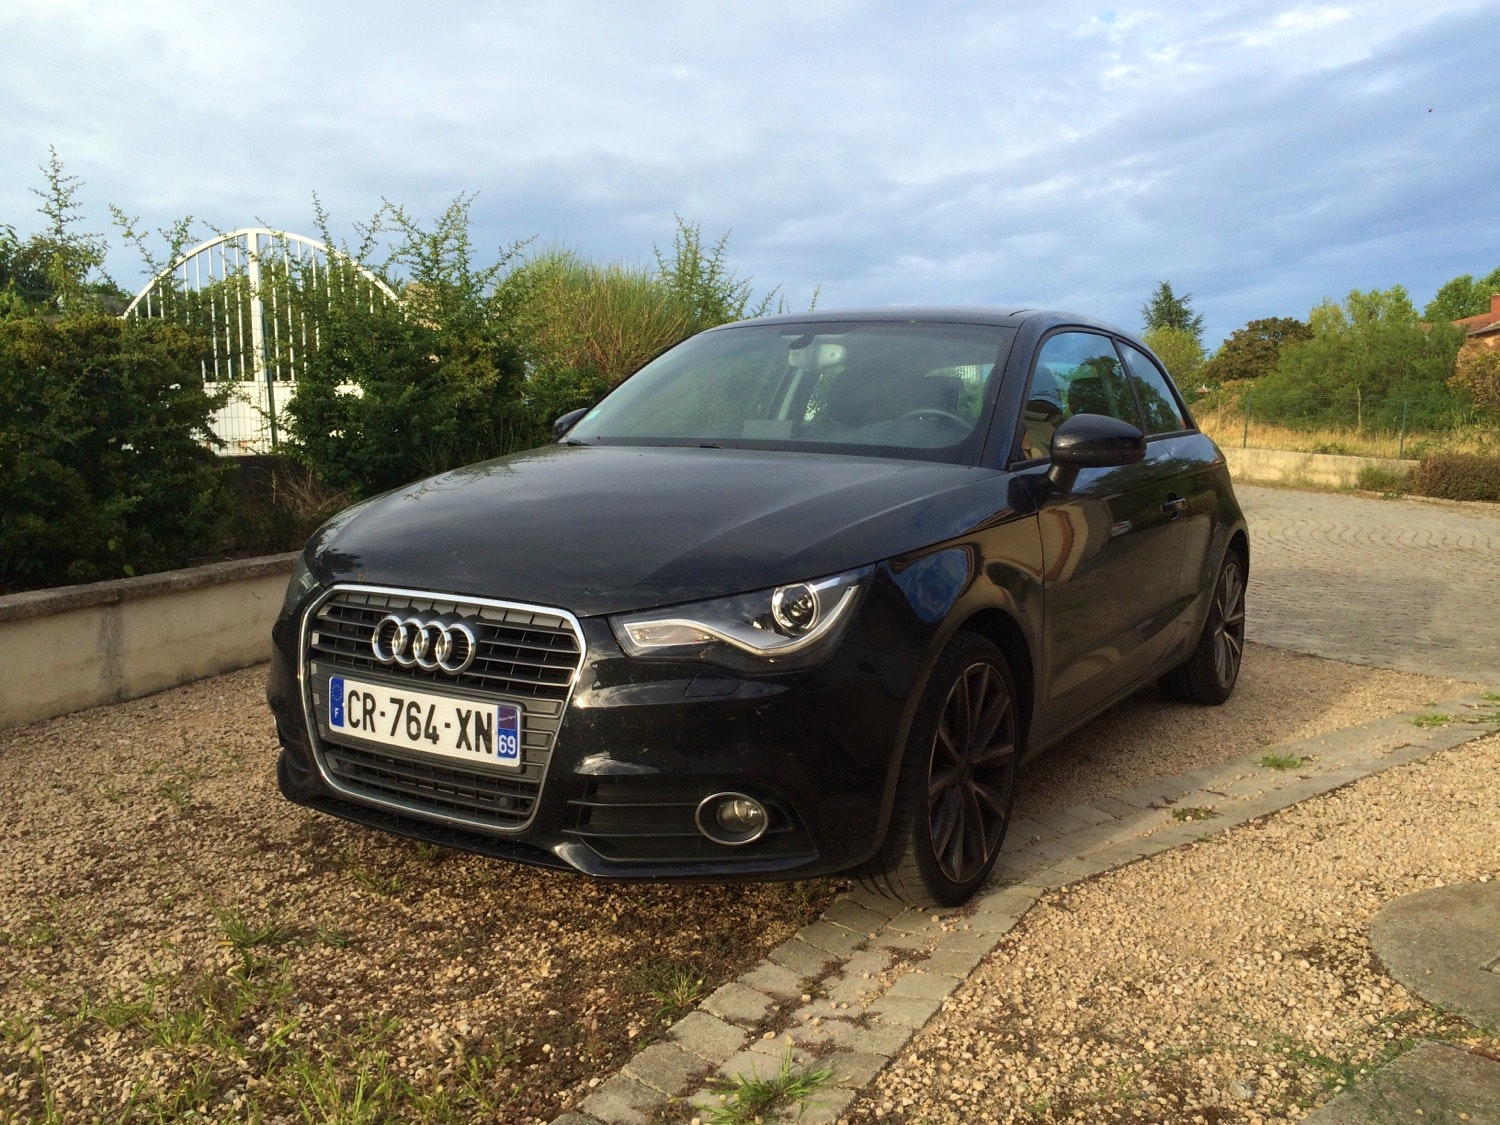 Audi A1 TDI90 AMBITION LUXE S-TRONIC SPORT, 2013, Diesel, automatique